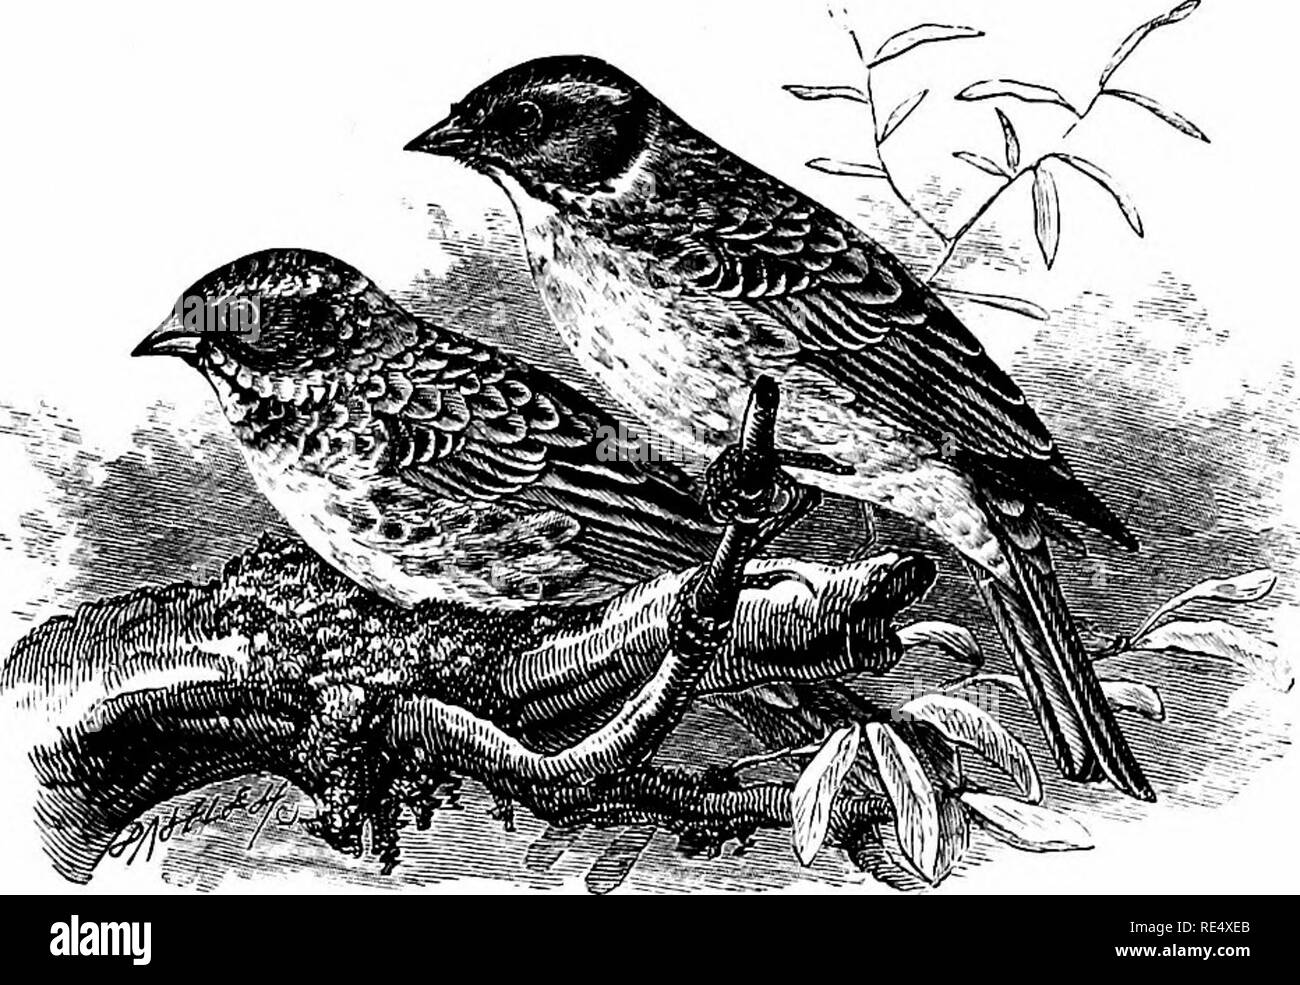 . An illustrated manual of British birds. Birds. EMBERIZIN^.. THE RUSTIC BUNTING. Emberiza rtJstica, Pallas. The first example of the Rustic Bunting known to have occurred in England was caught near Brighton, on October 23rd 1867, and was shown alive to the late Mr. G. D. Rowley ; it is now in the collection of Mr. T. J. Monk of Lewes. A second, identified and recorded by Mr. W. E. Clarke (Zool. 1881, p. 465), exhibited at a meeting of the Zoological Society, and now in the York Museum, was shot on the Holderness coast, Yorkshire, on September 17th 1881, the same day on which a young bird of t - Stock Image